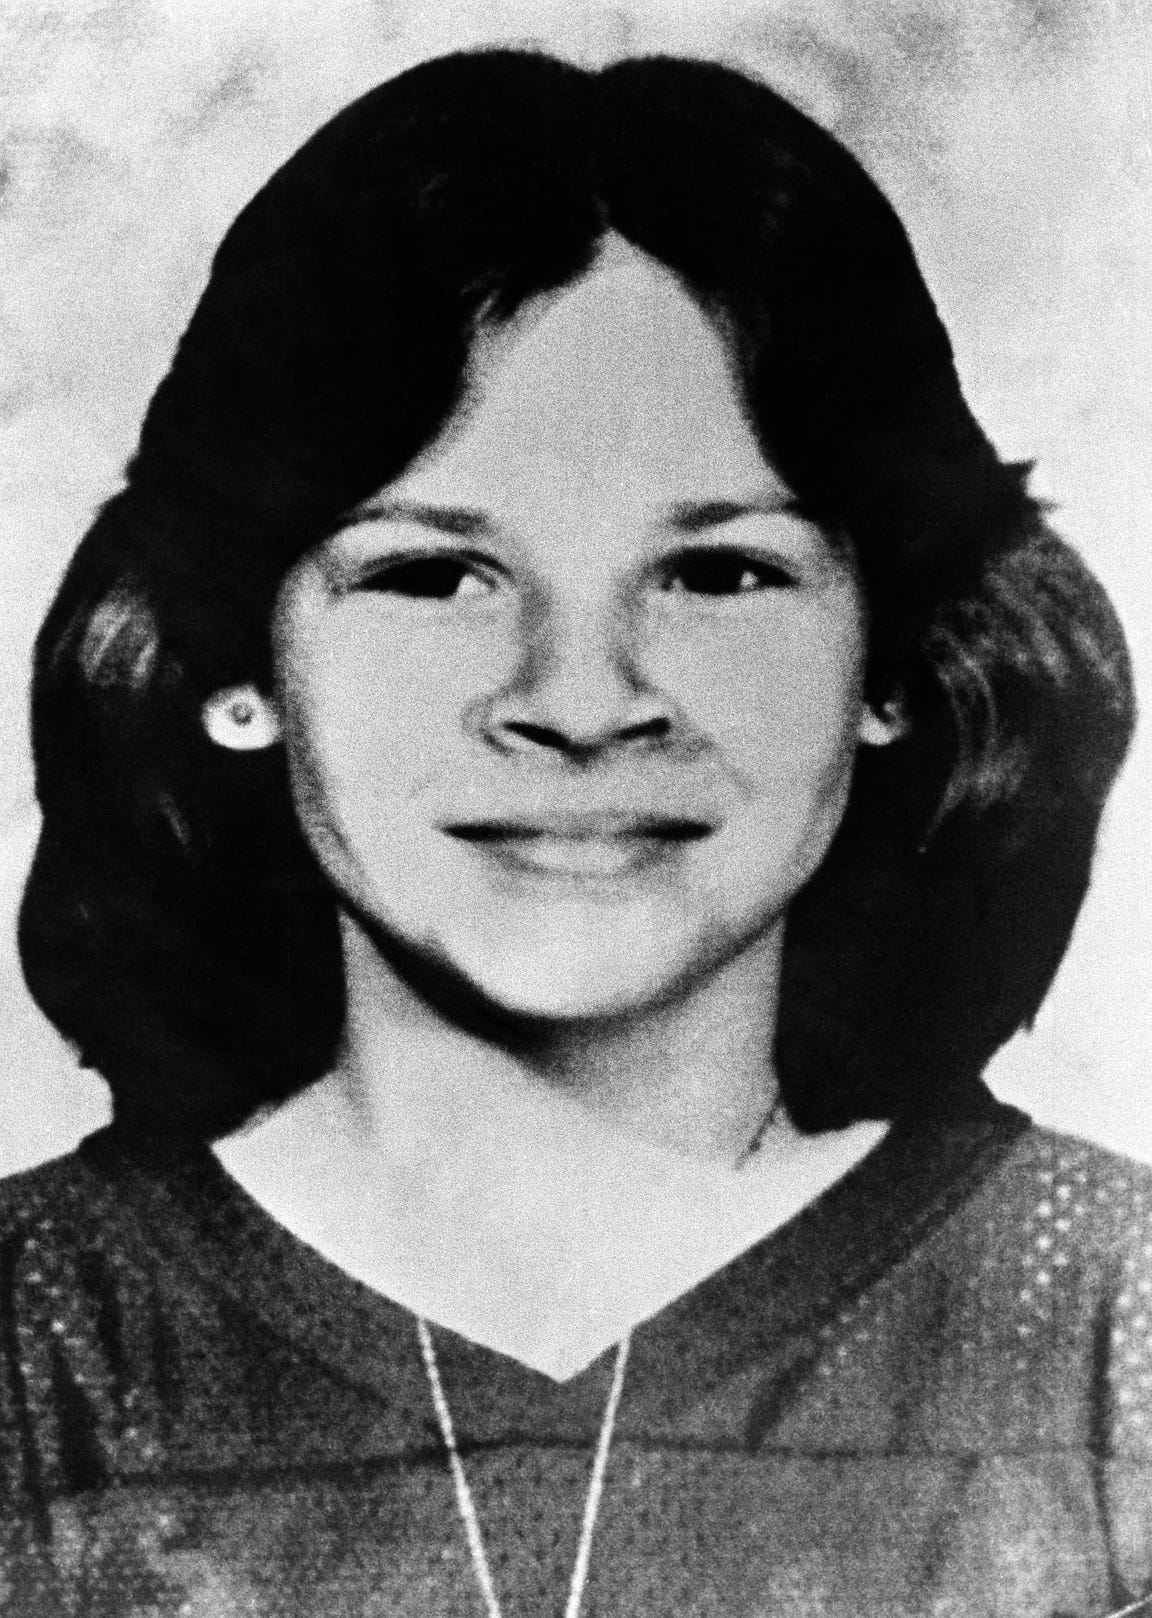 Kimberly Leach, a victim of serial killer Ted Bundy, is shown in an undated photo.